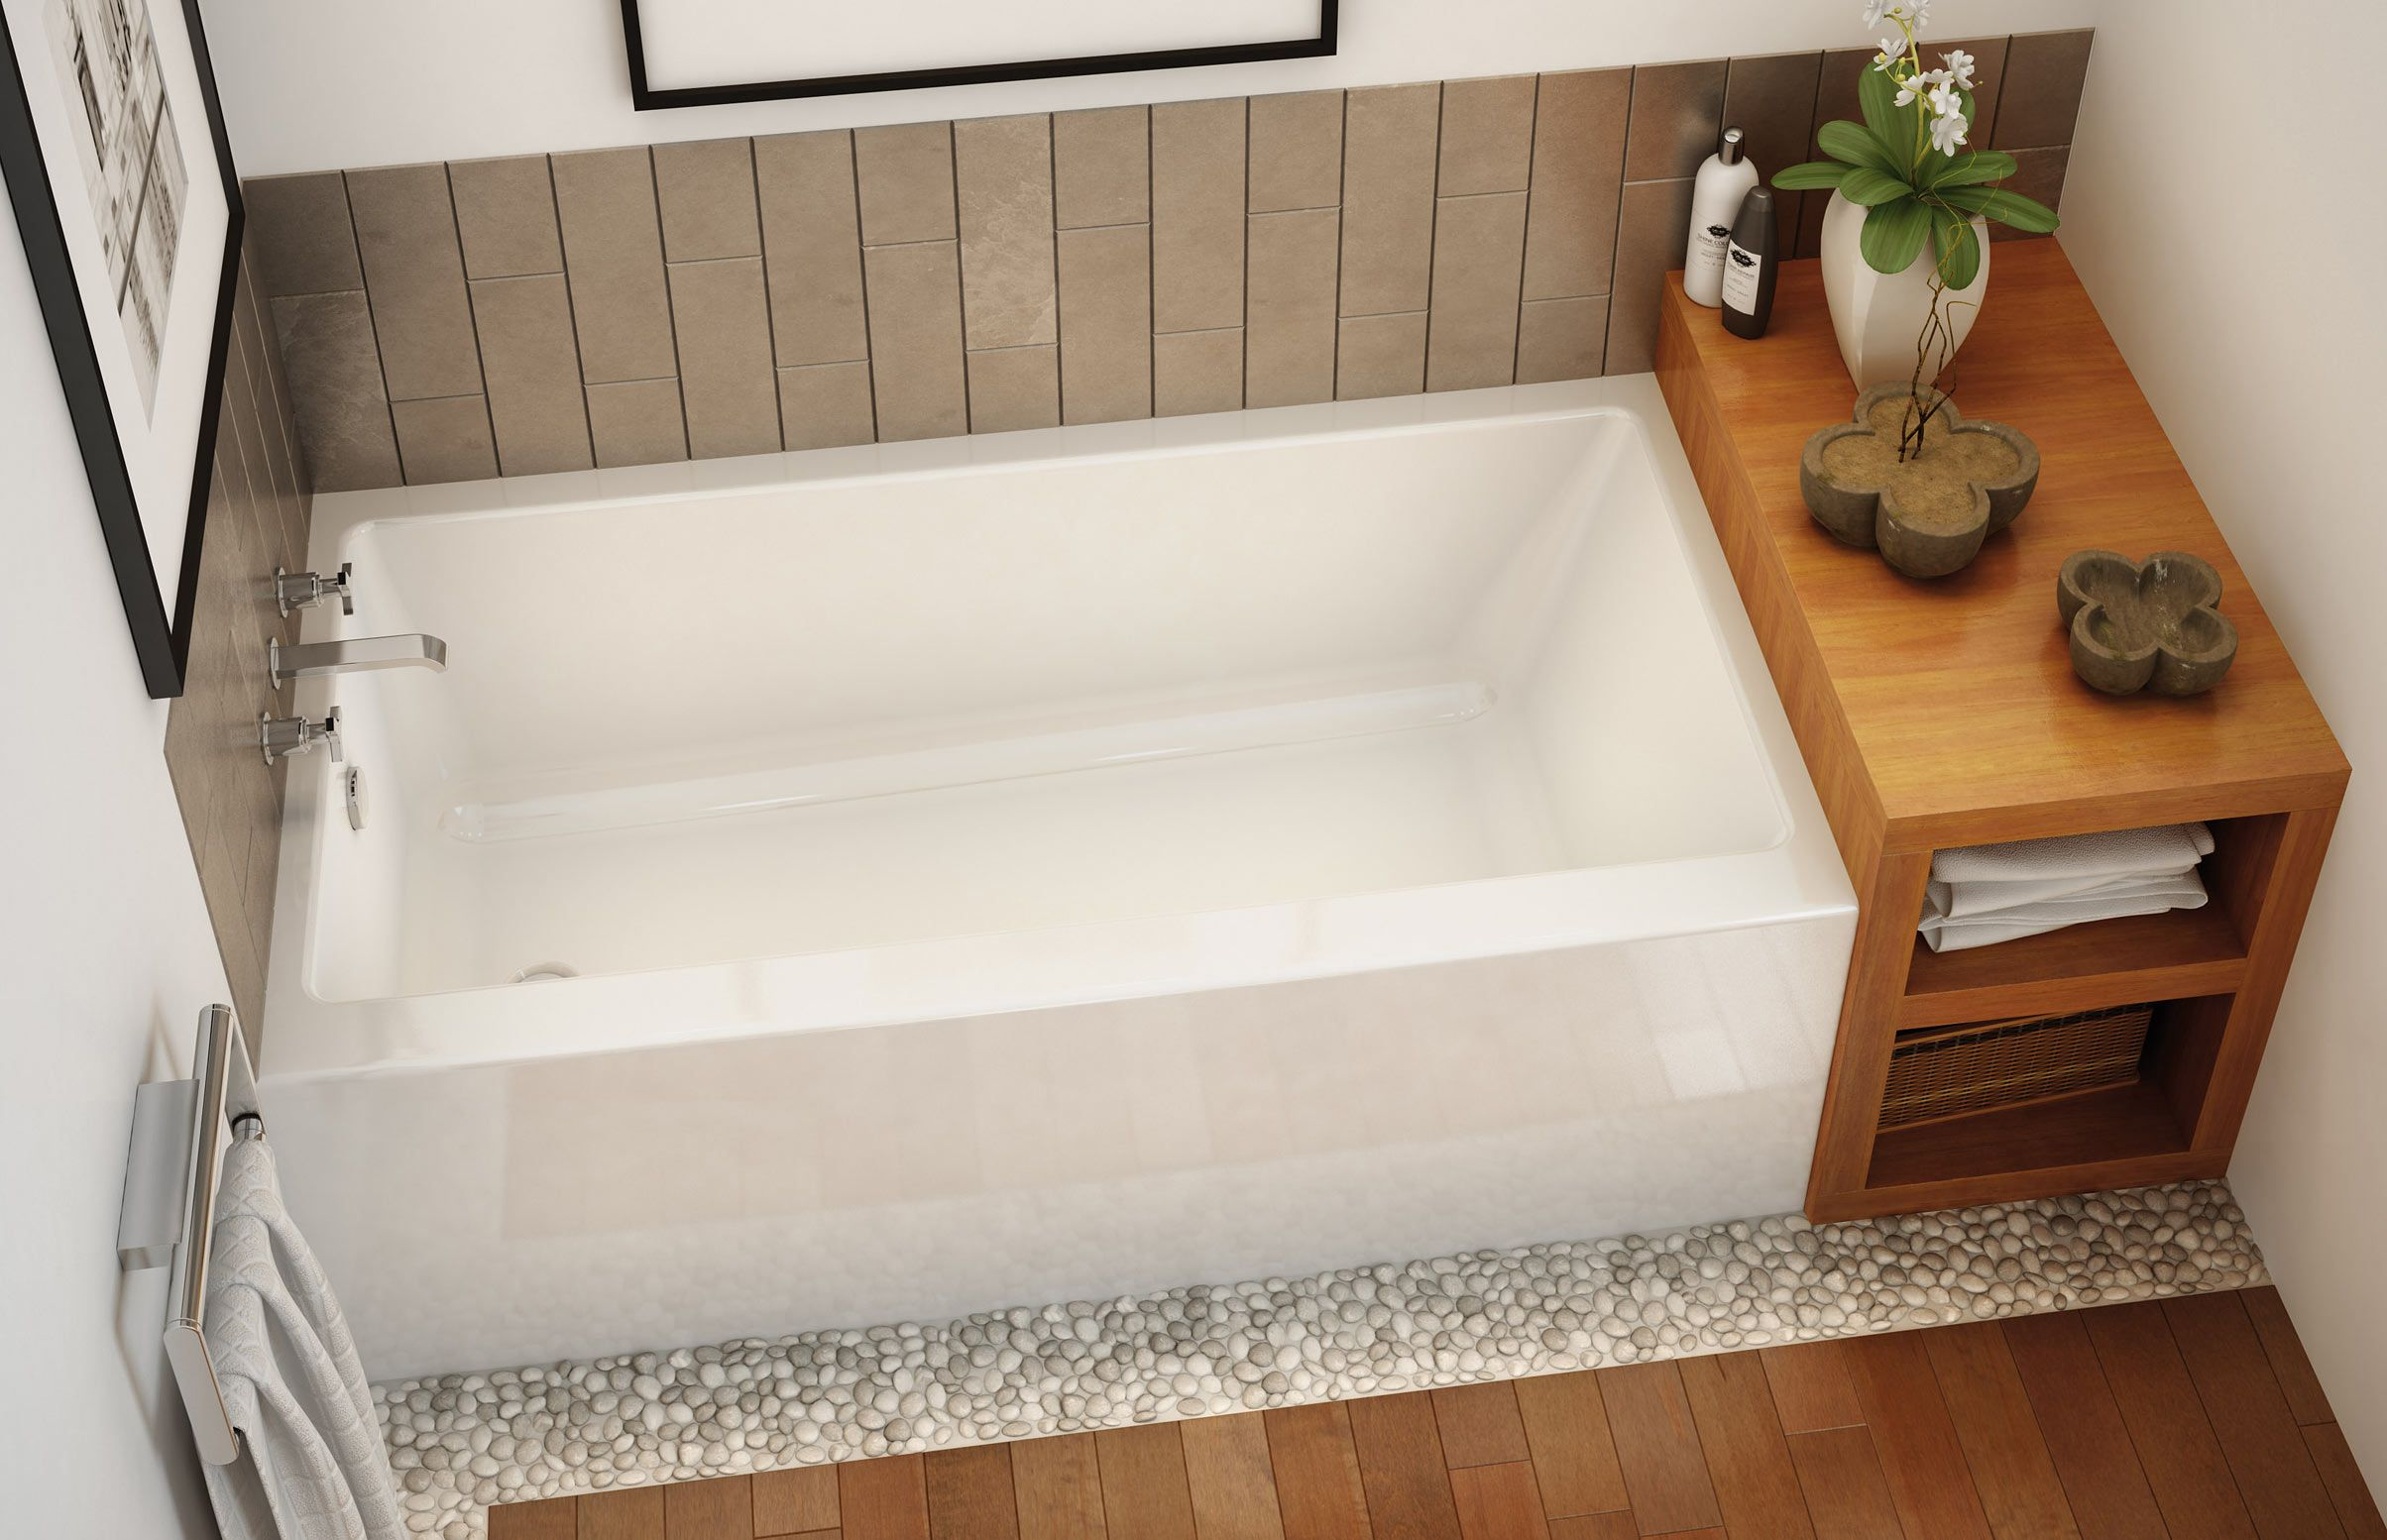 Maax professional rubix 6030 6032 alcove bathtub 60 x30 for Garden tub sizes